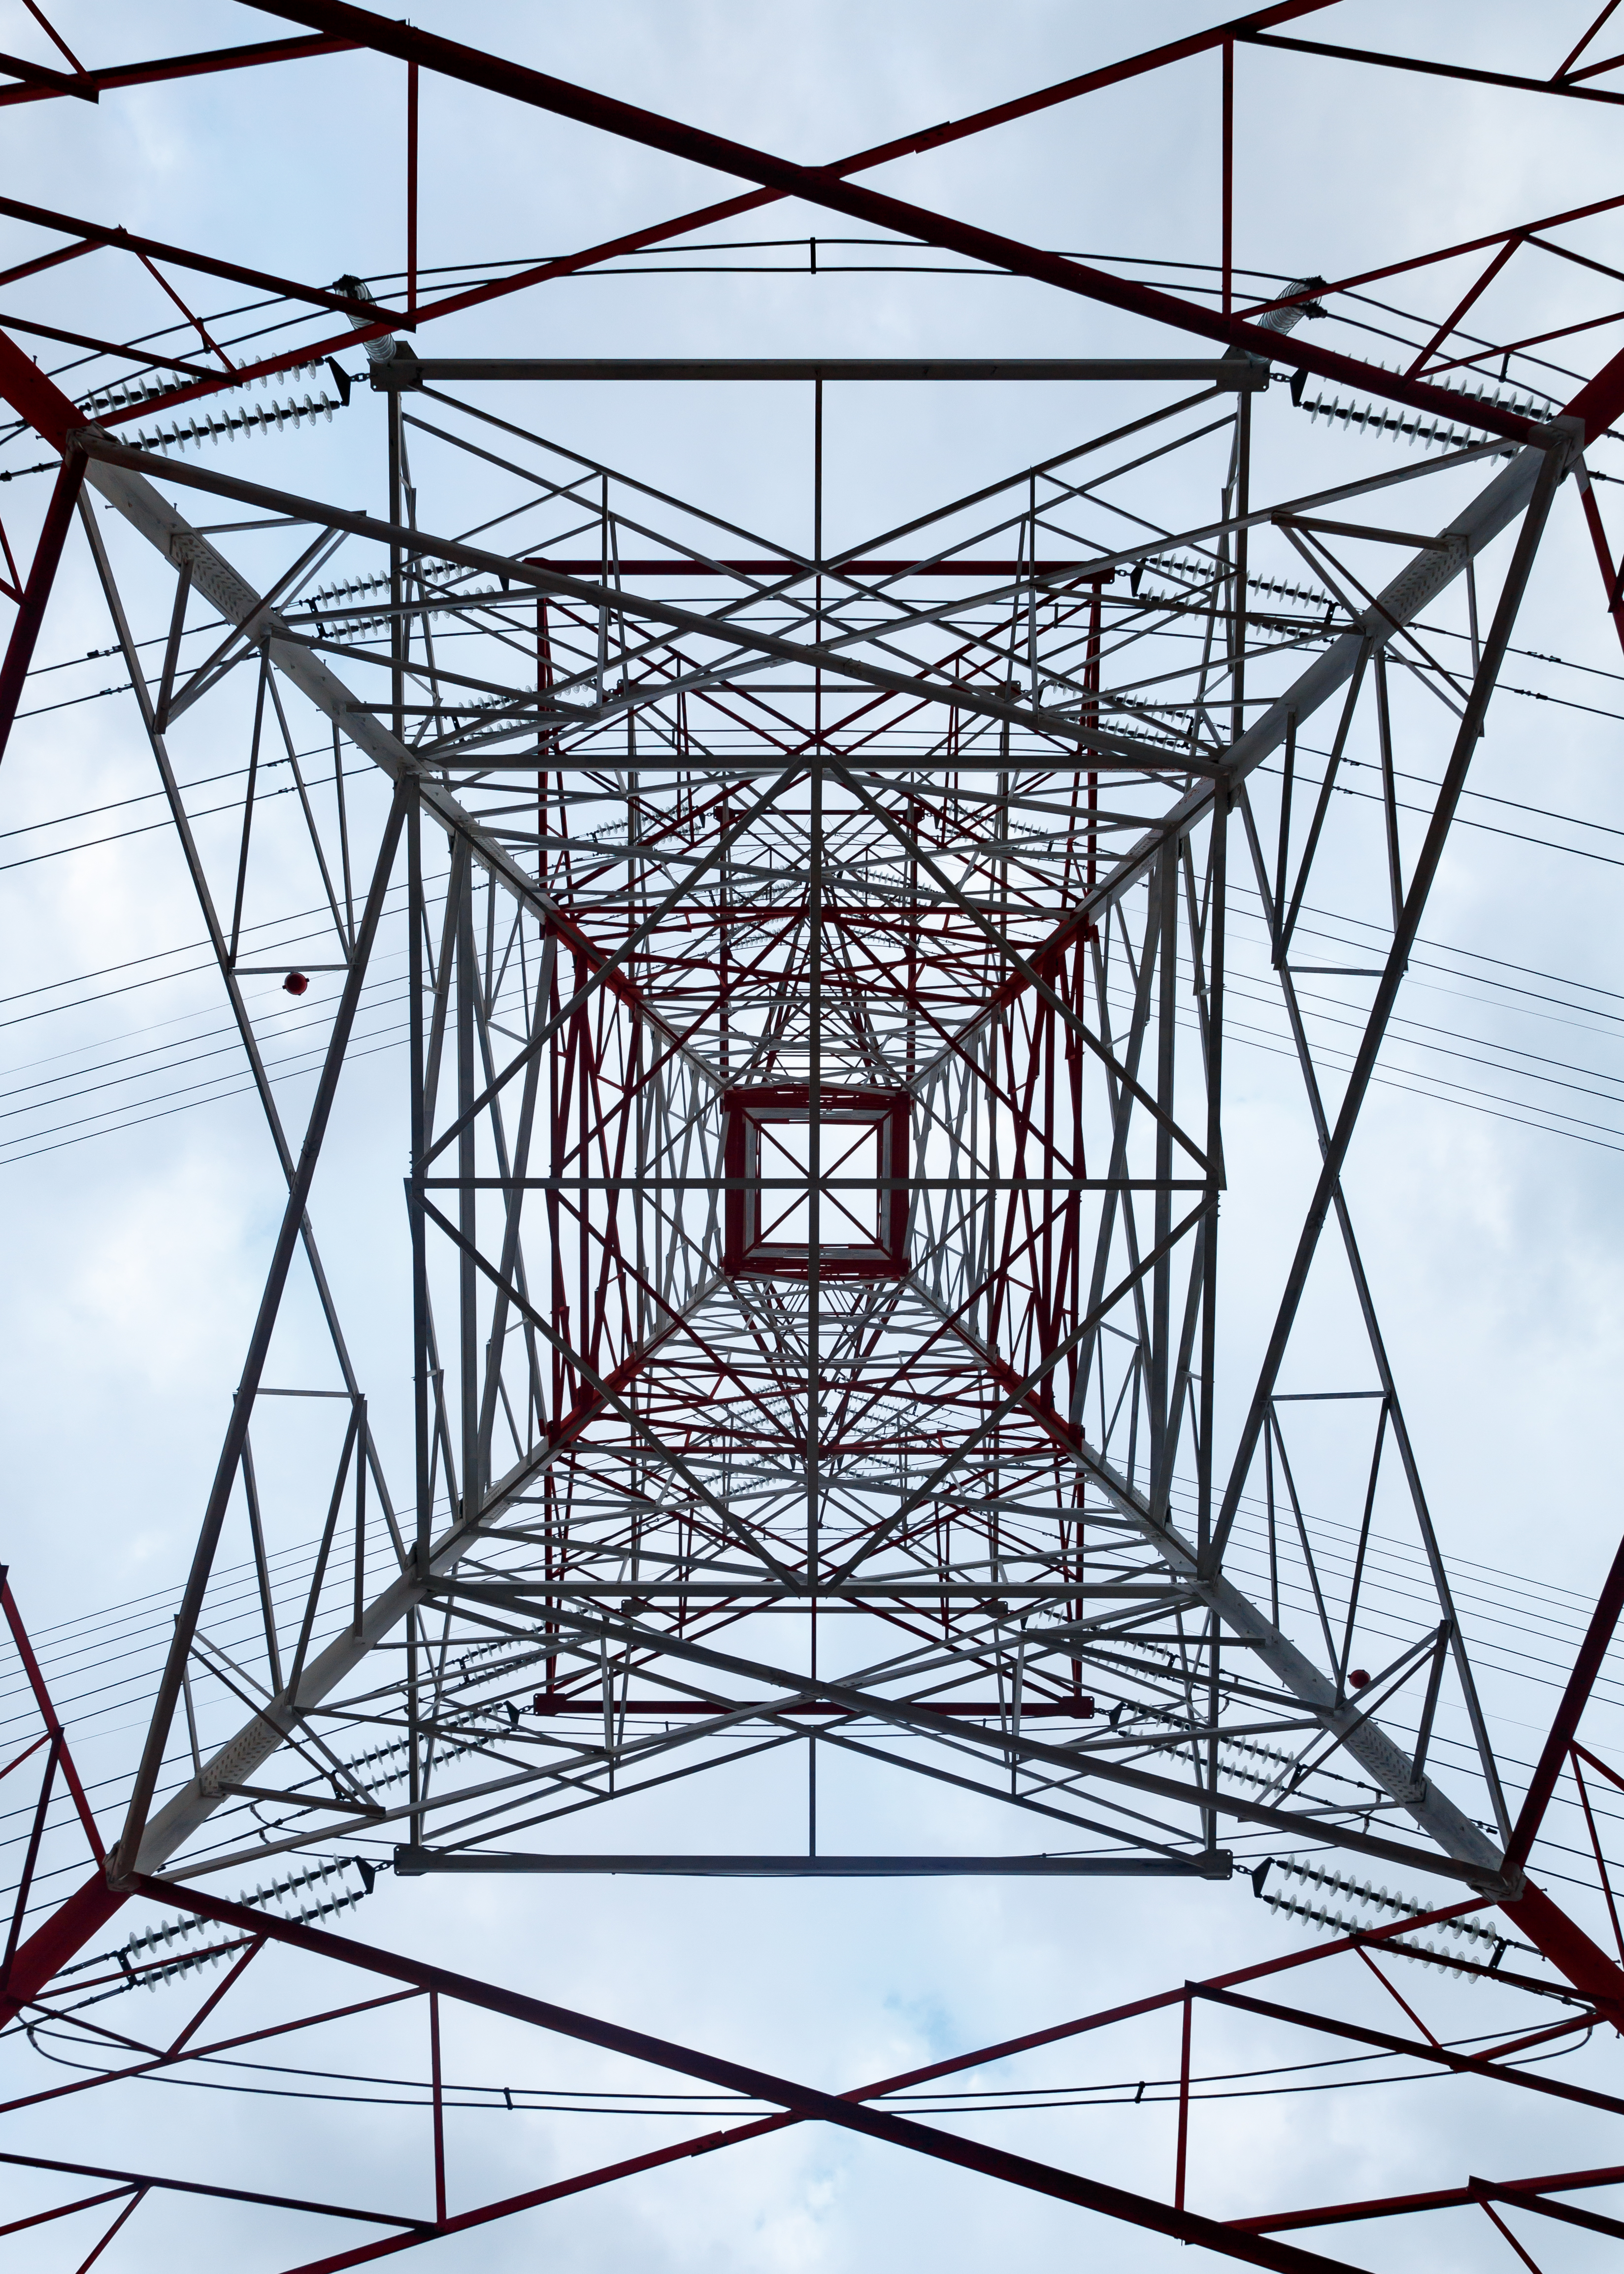 Filelok Kawi Sabah Electricity Pylon 01 Wikimedia Commons Electric Barbed Wire Free Stock Photo Public Domain Pictures